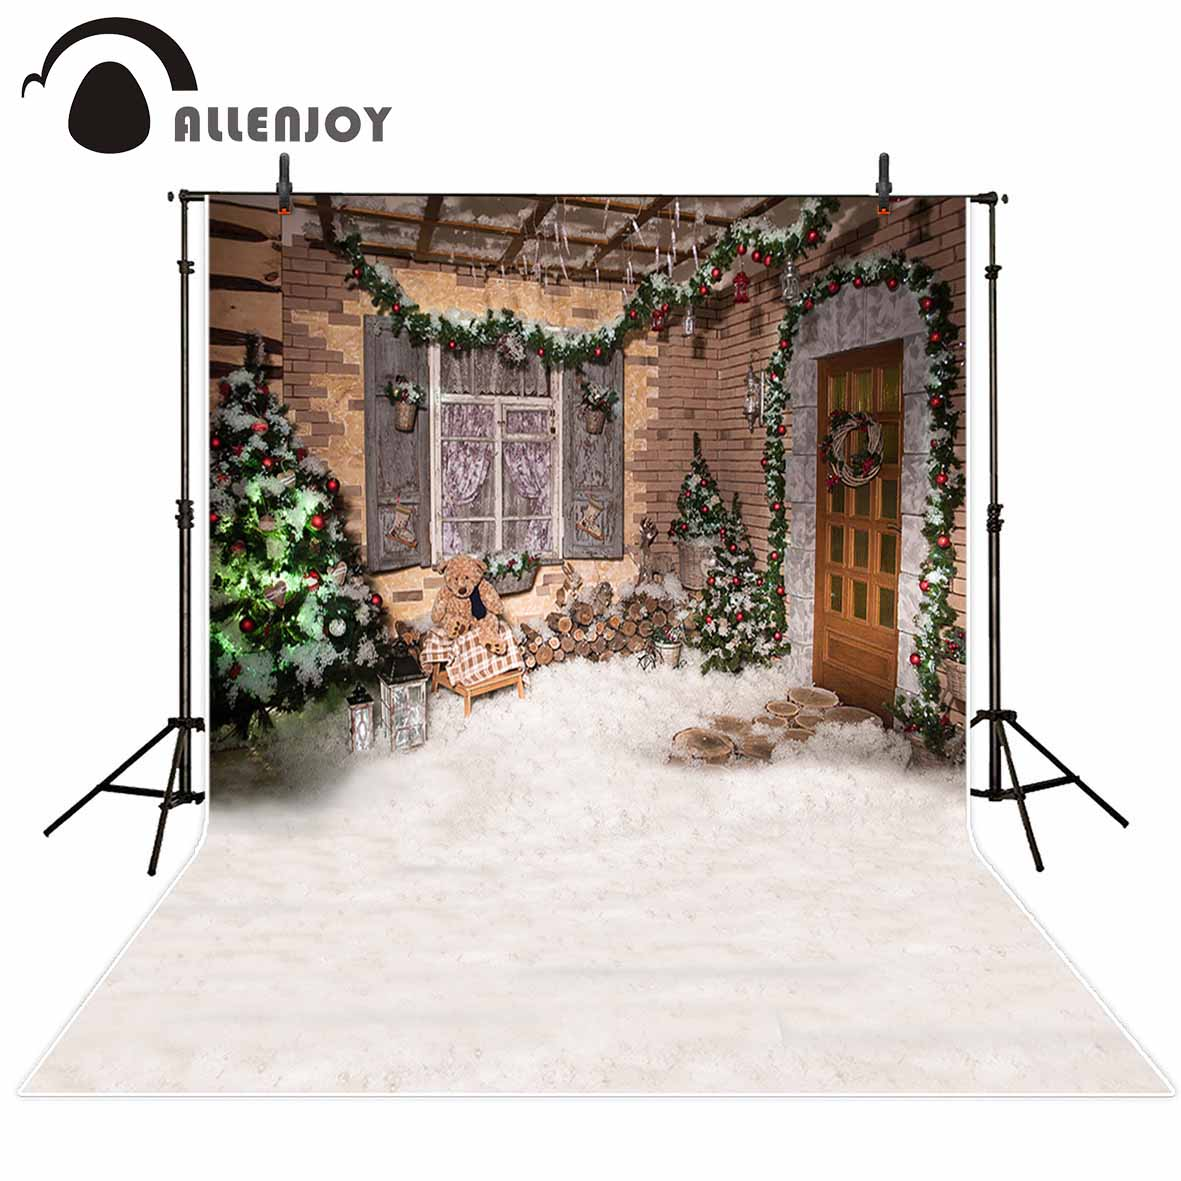 Allenjoy photography backdrop Snow winter house Christmas tree party children new background photocall customize photo printed цена и фото